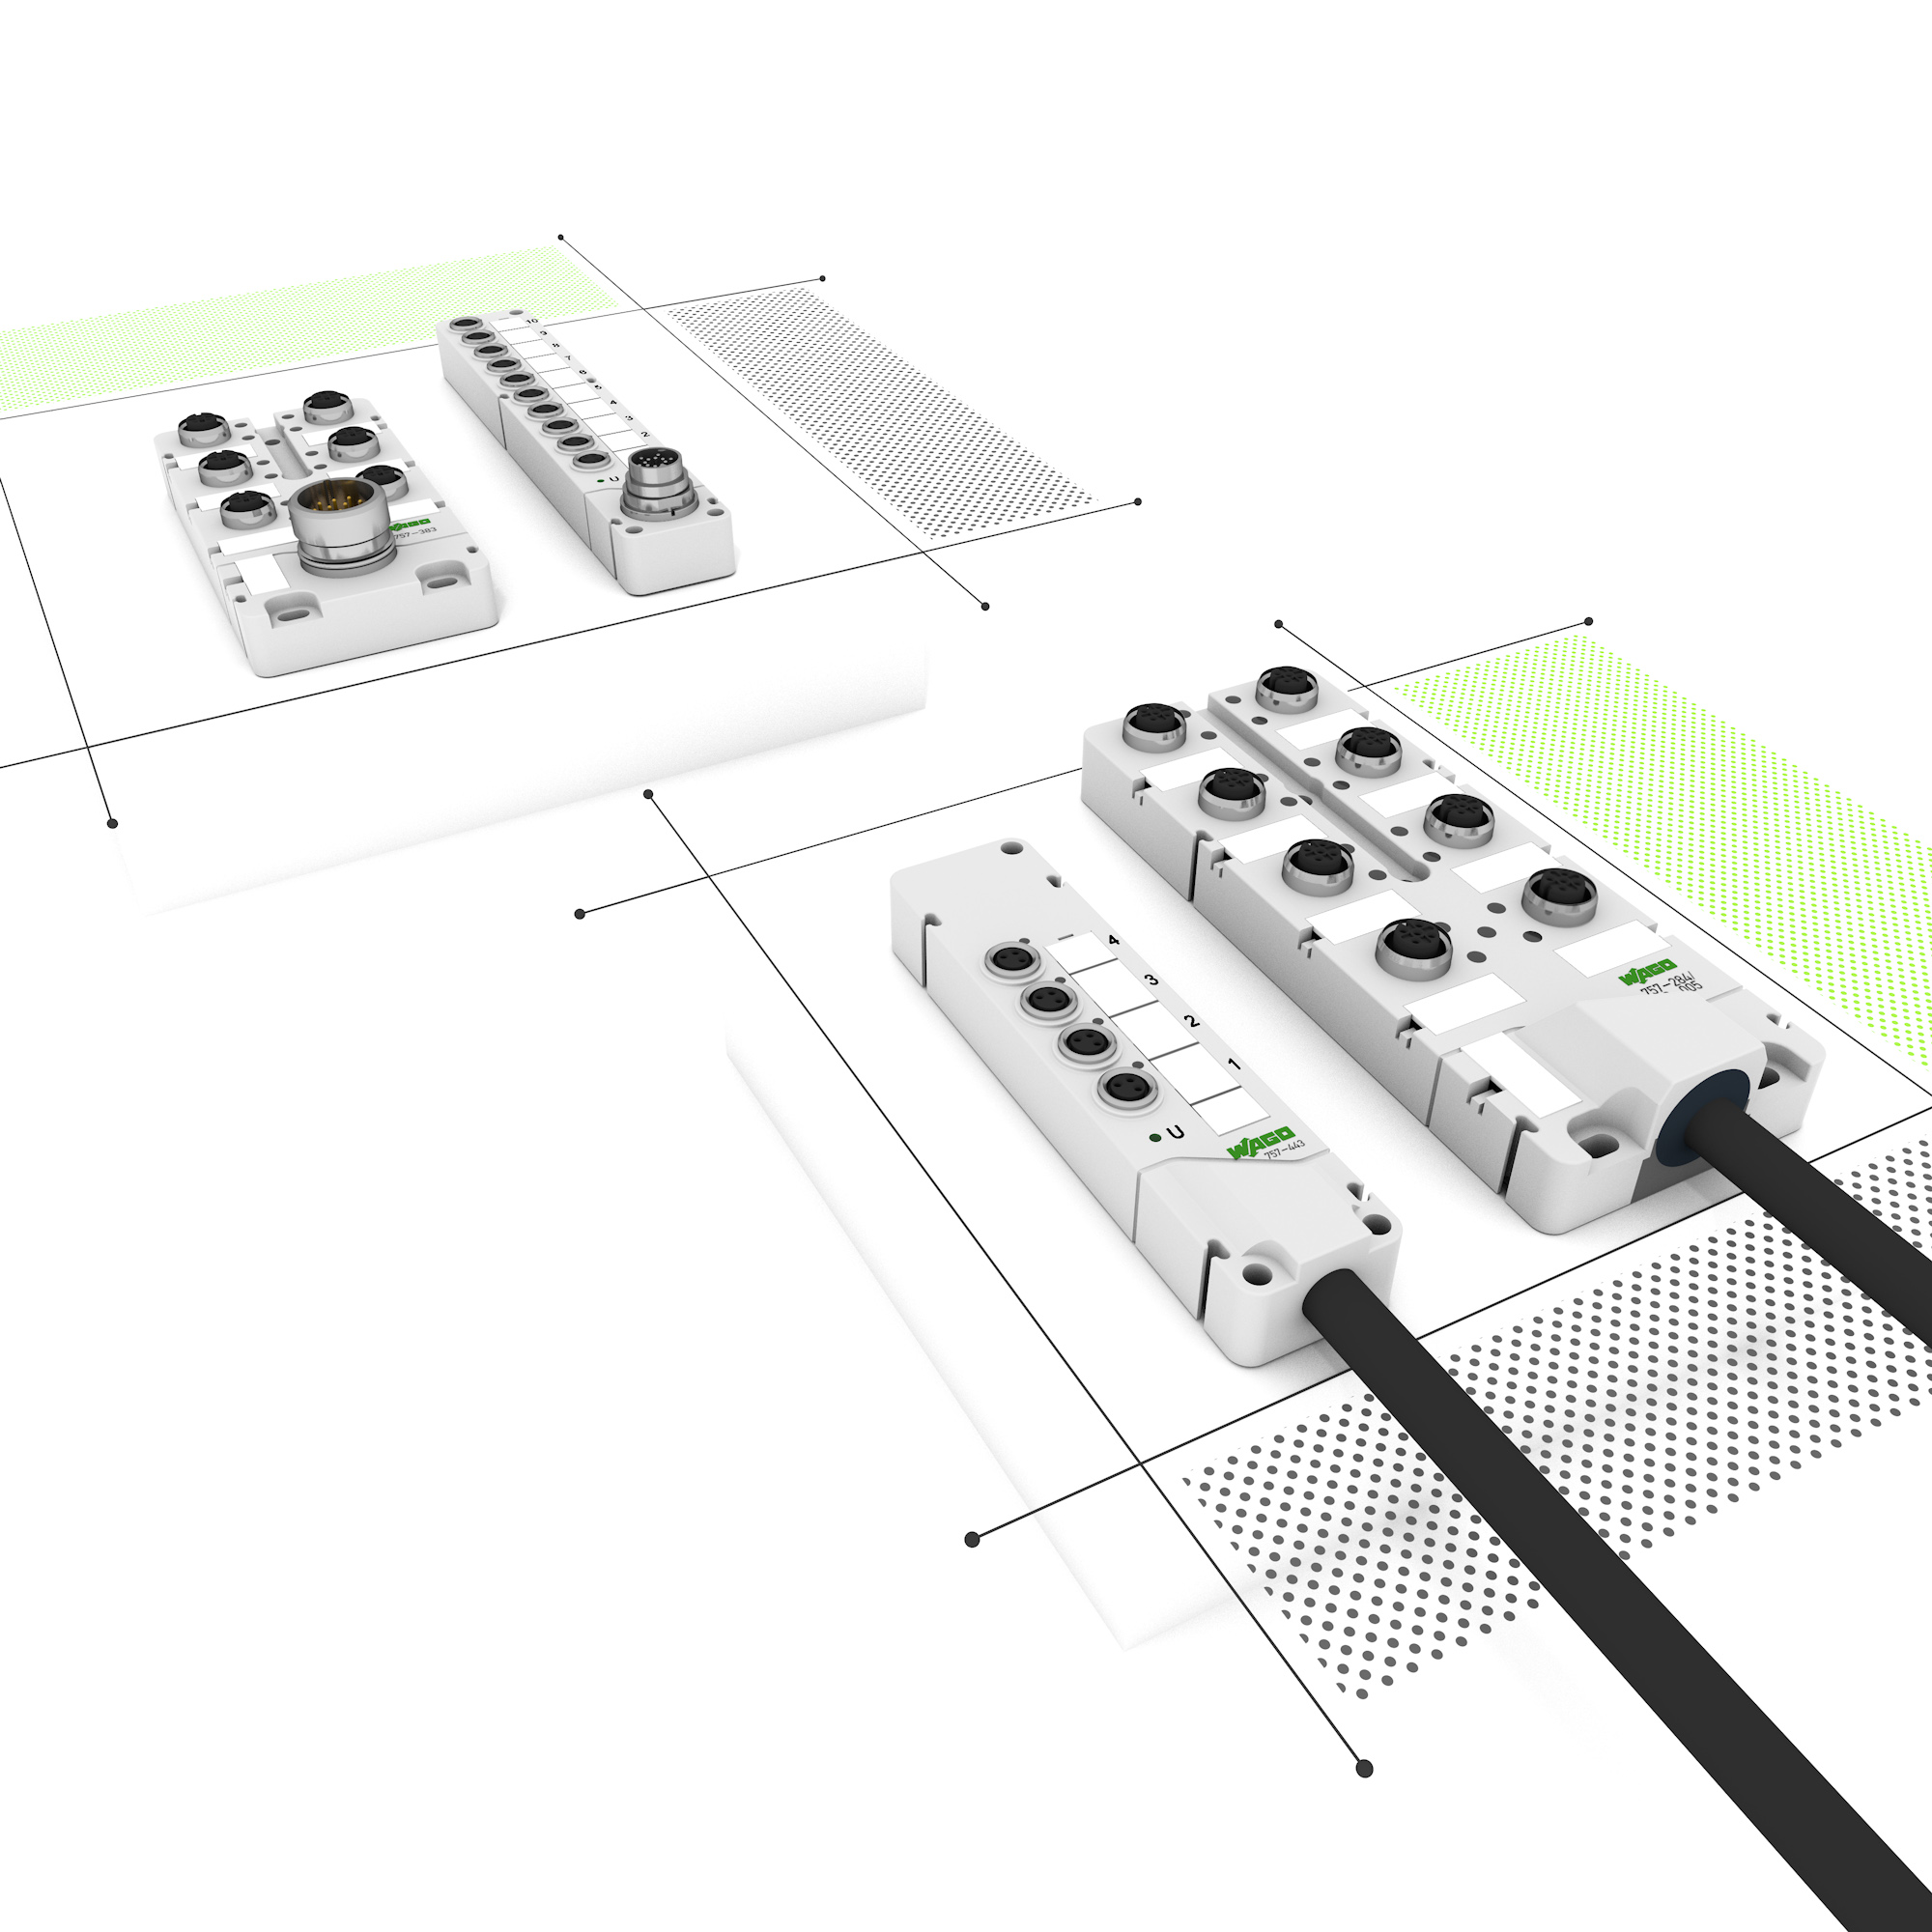 WAGO | Sensor/Actuator Boxes – For Cabinet-Free Signal Transmission